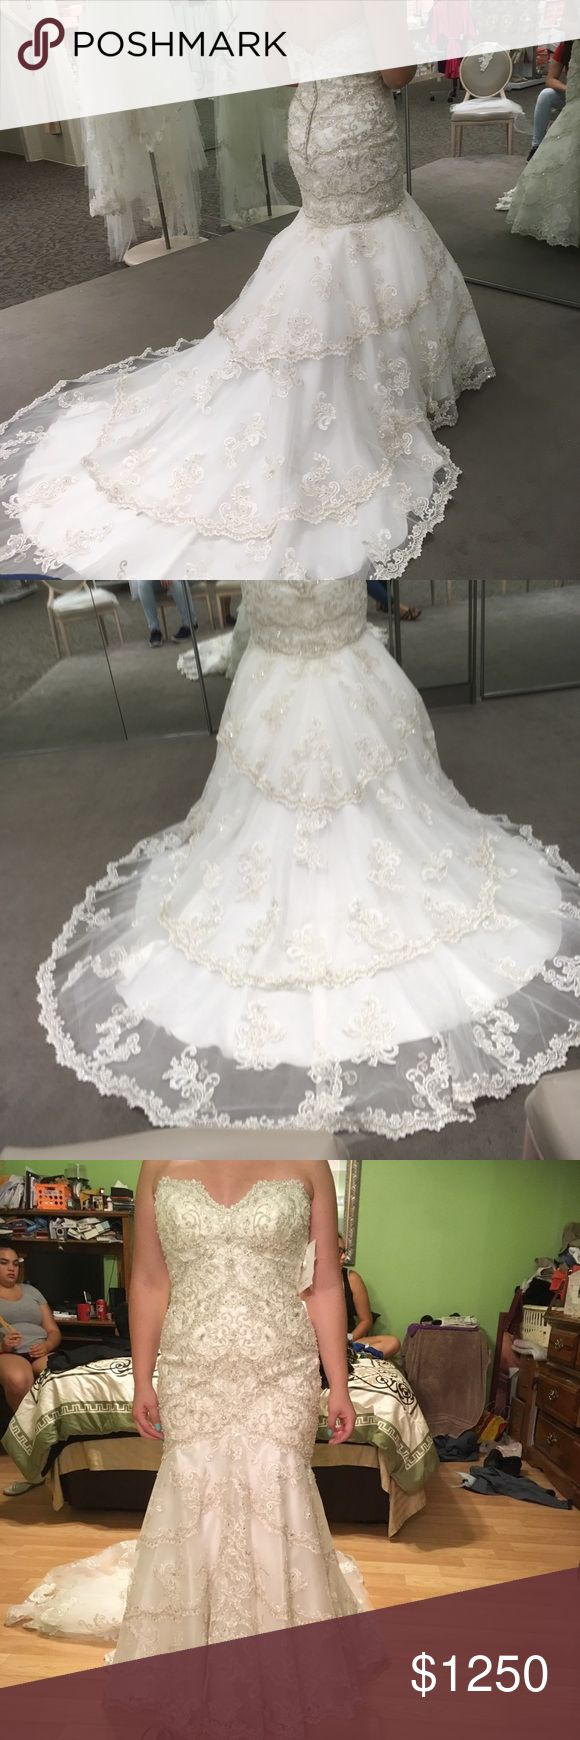 """Brand new mori lee 2801 wedding dress Brand new never worn Mori Lee 2801 wedding dress in ivory/silver. Fit and flare/trumpet style dress. Beautiful beading and embroidery detail.  No alterations done, dress is a 55"""" hem length. Mori Lee Dresses Wedding"""